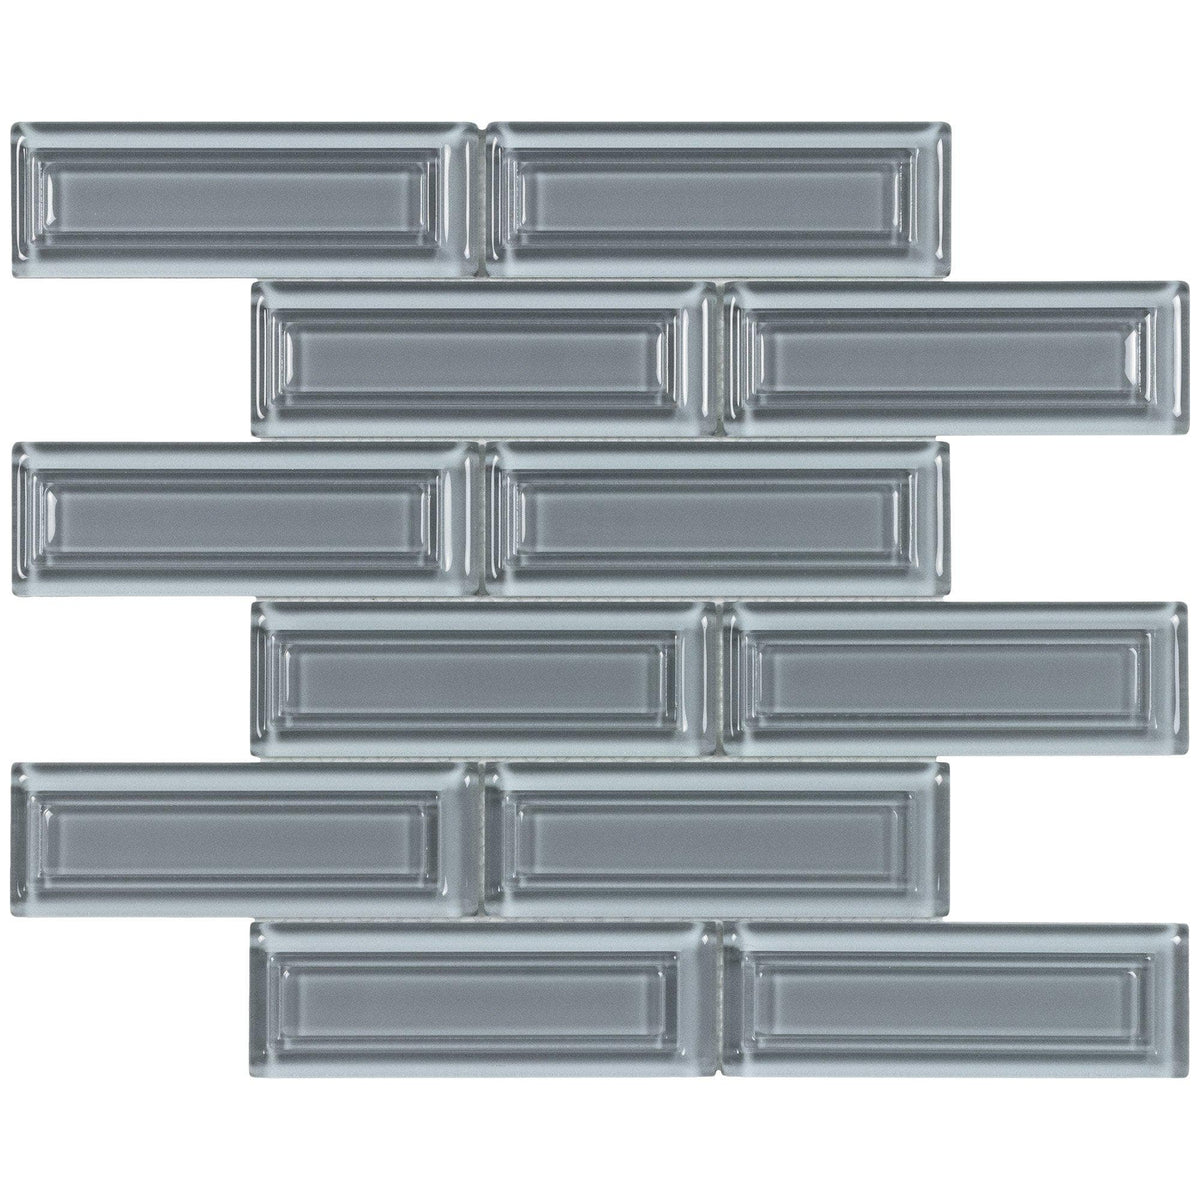 2x6 Gray Blue Glass Mosaic Beveled Subway Tile Mto0515